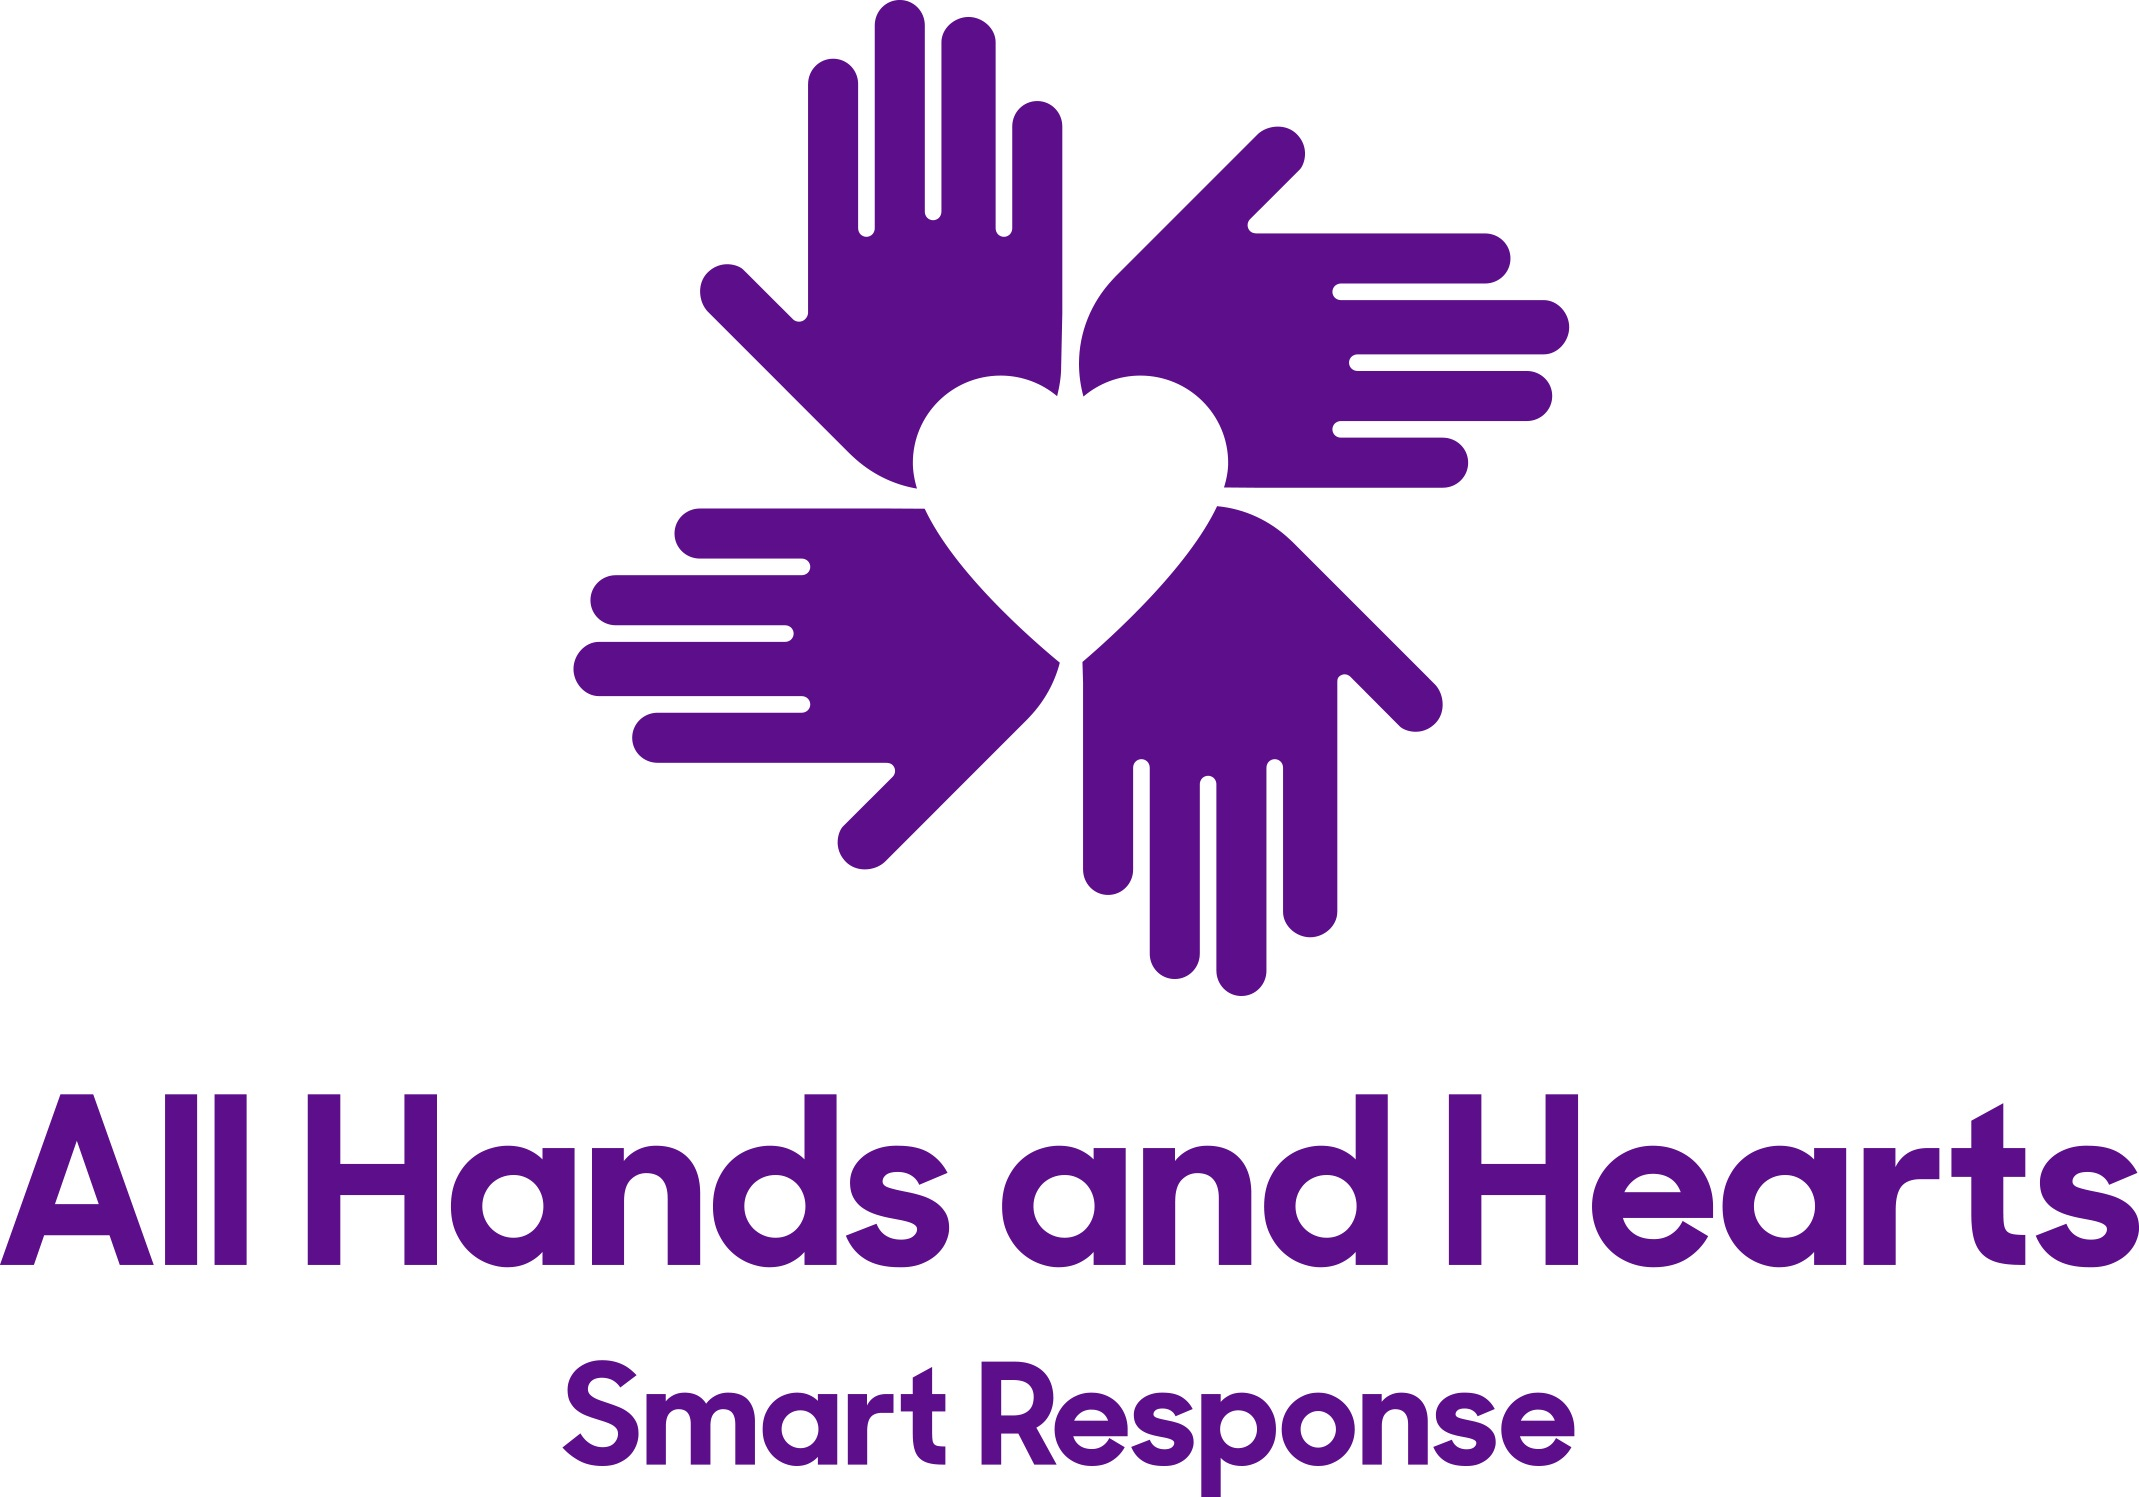 All Hands and Hearts Smart Response